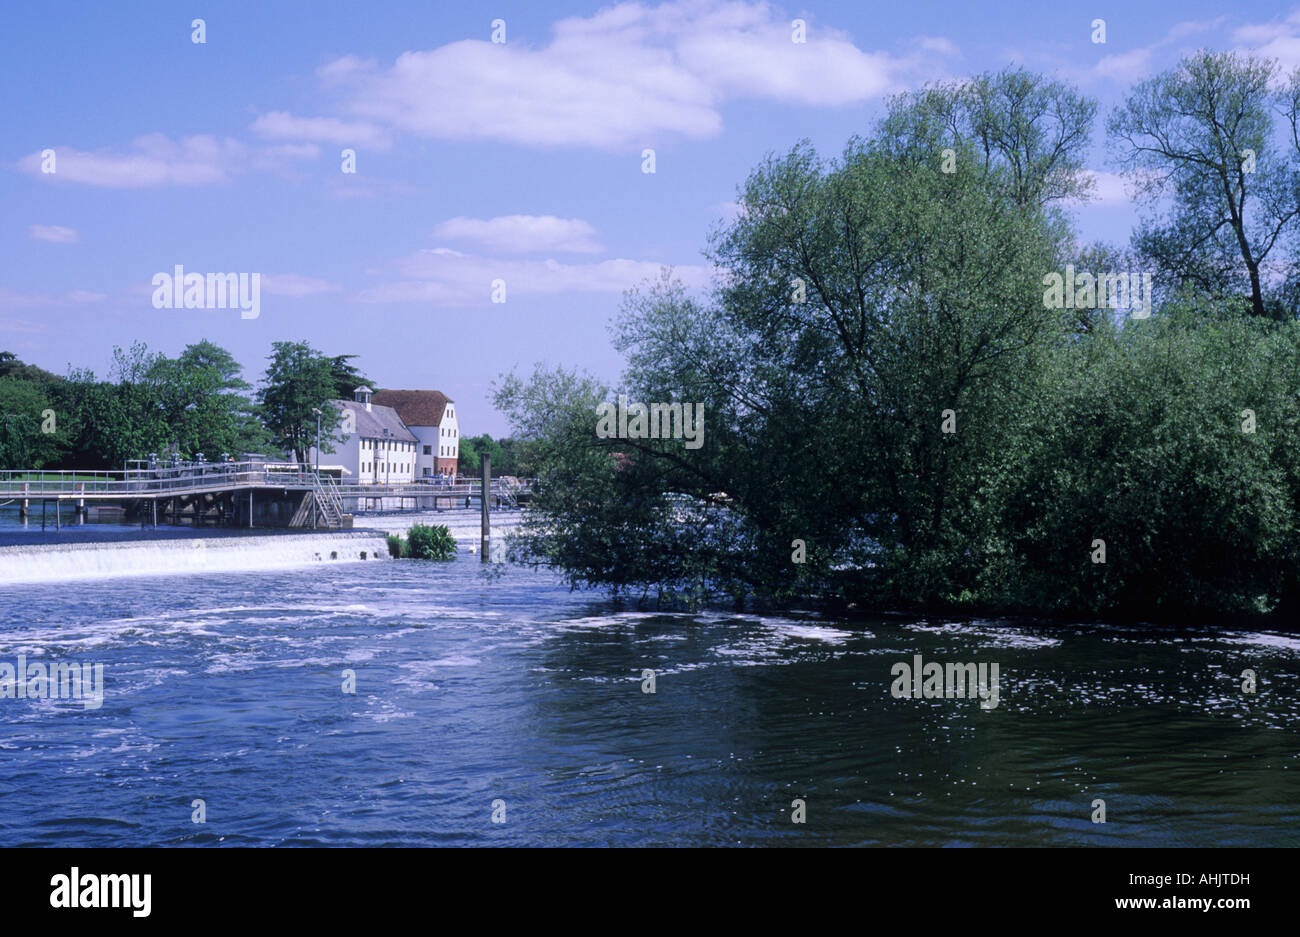 Hambleden Mill Weir River Buckinghamshire Thames Valley river footbridge foot bridge - Stock Image